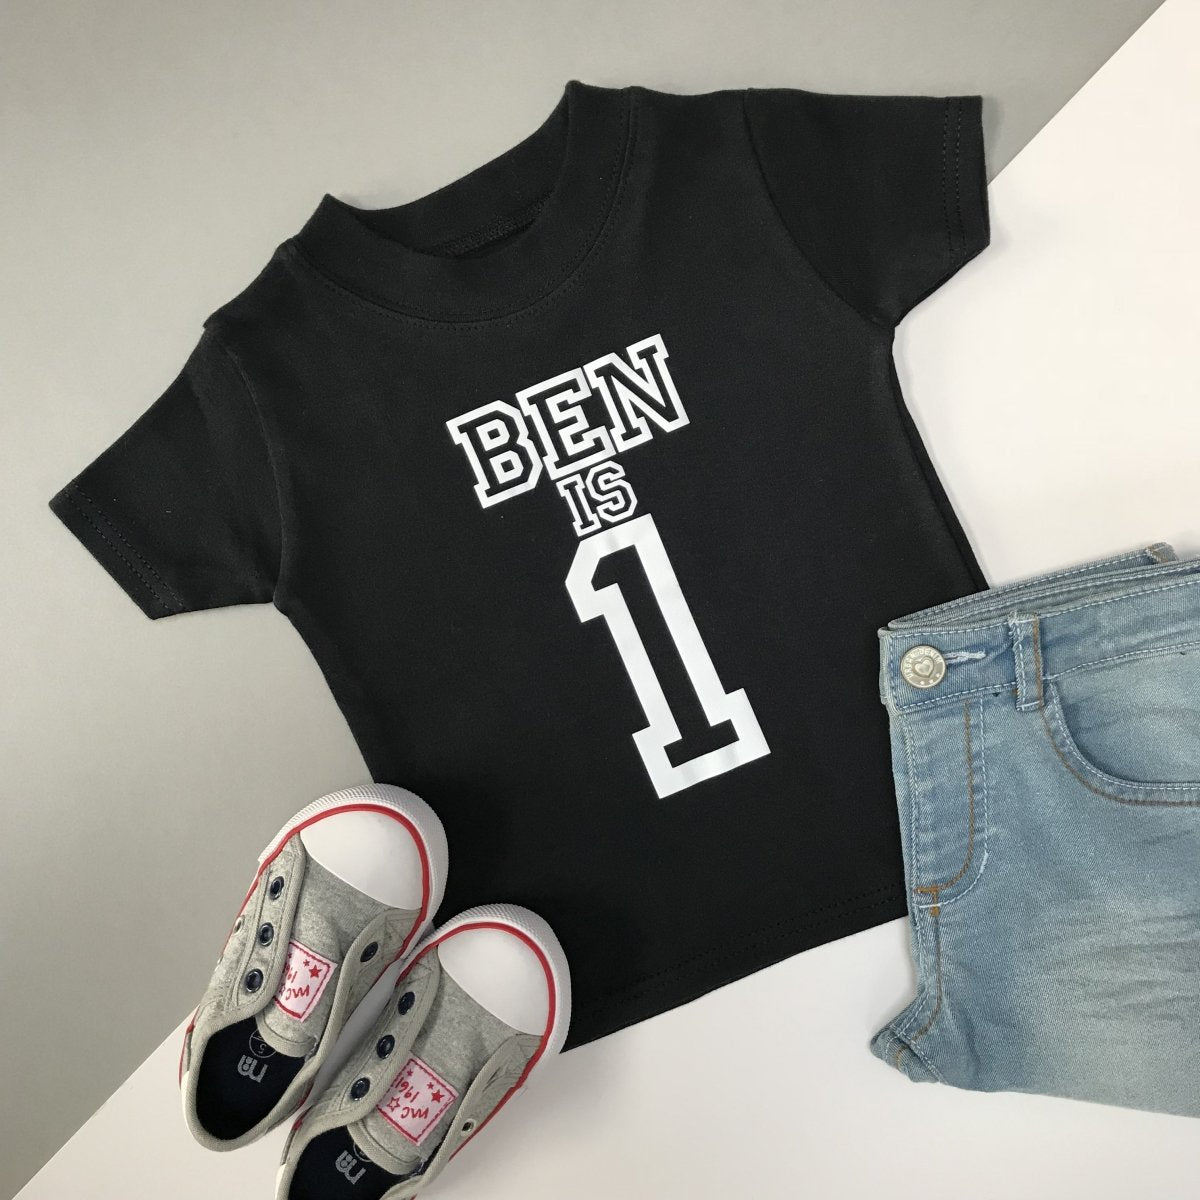 1st Birthday Shirt Personalised, Varsity Design